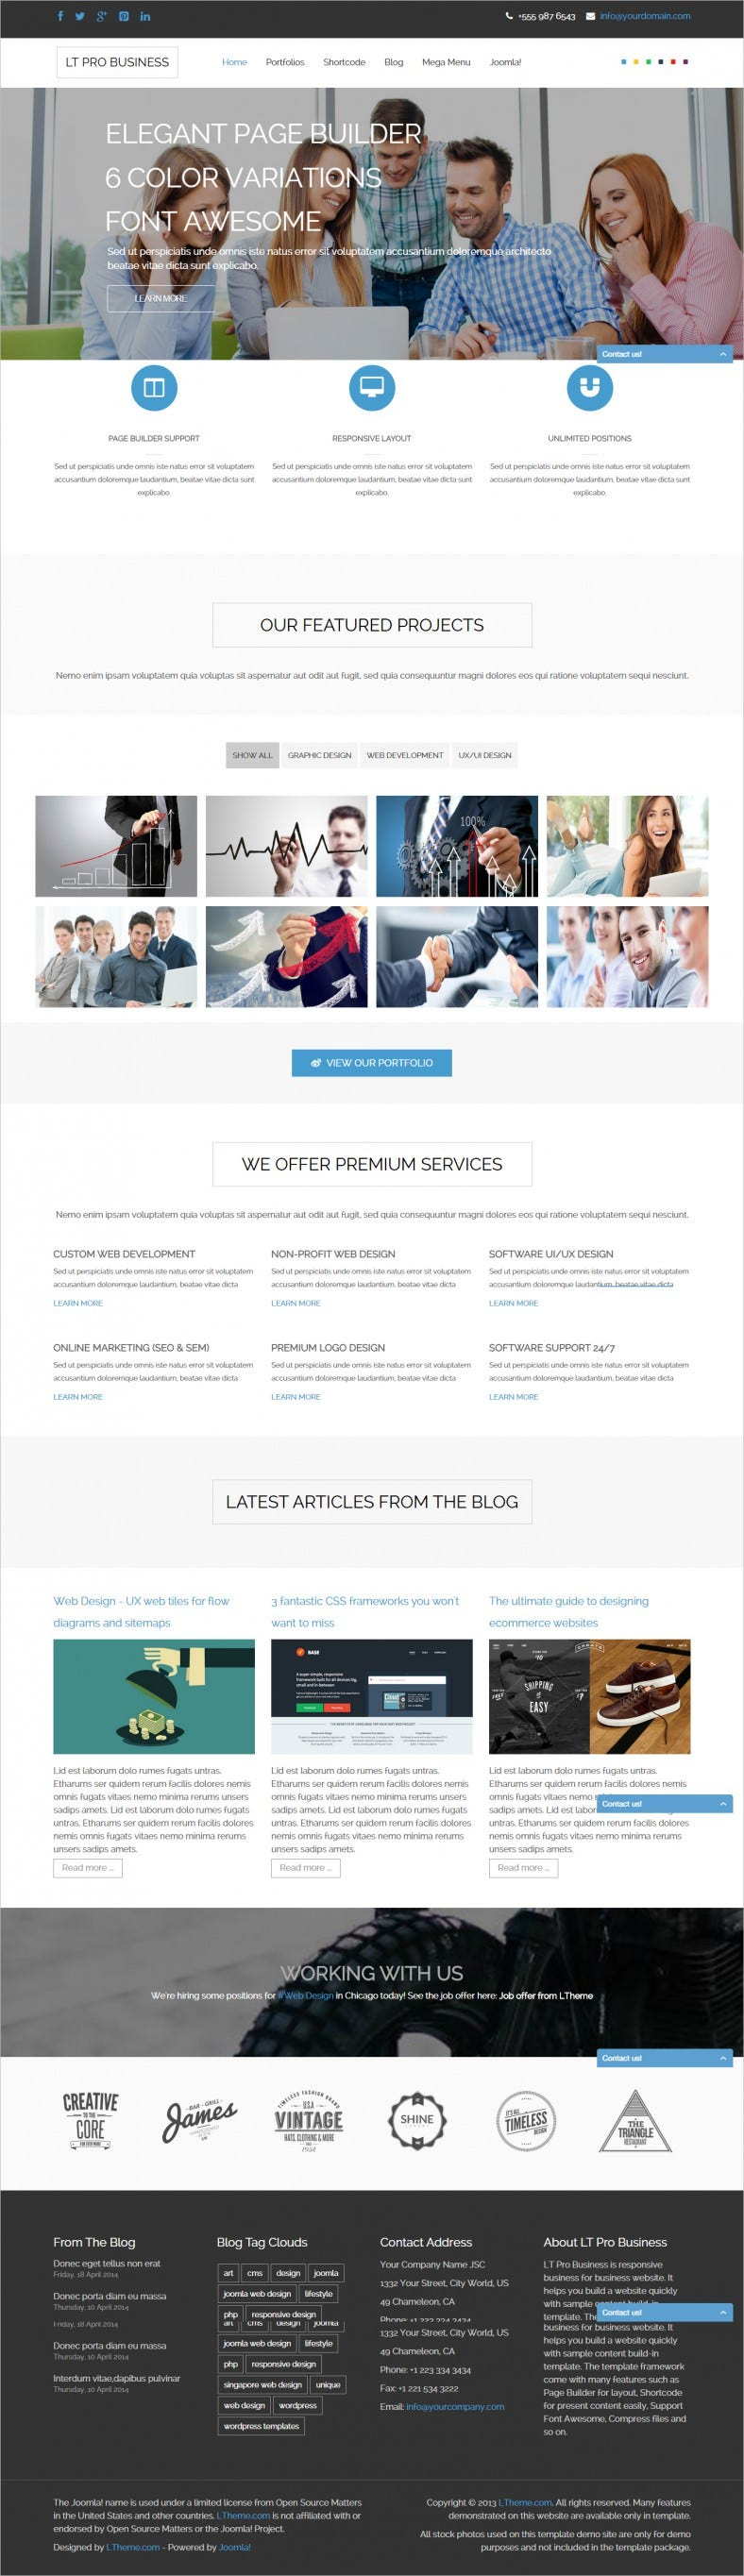 Forex brokers free psd website template